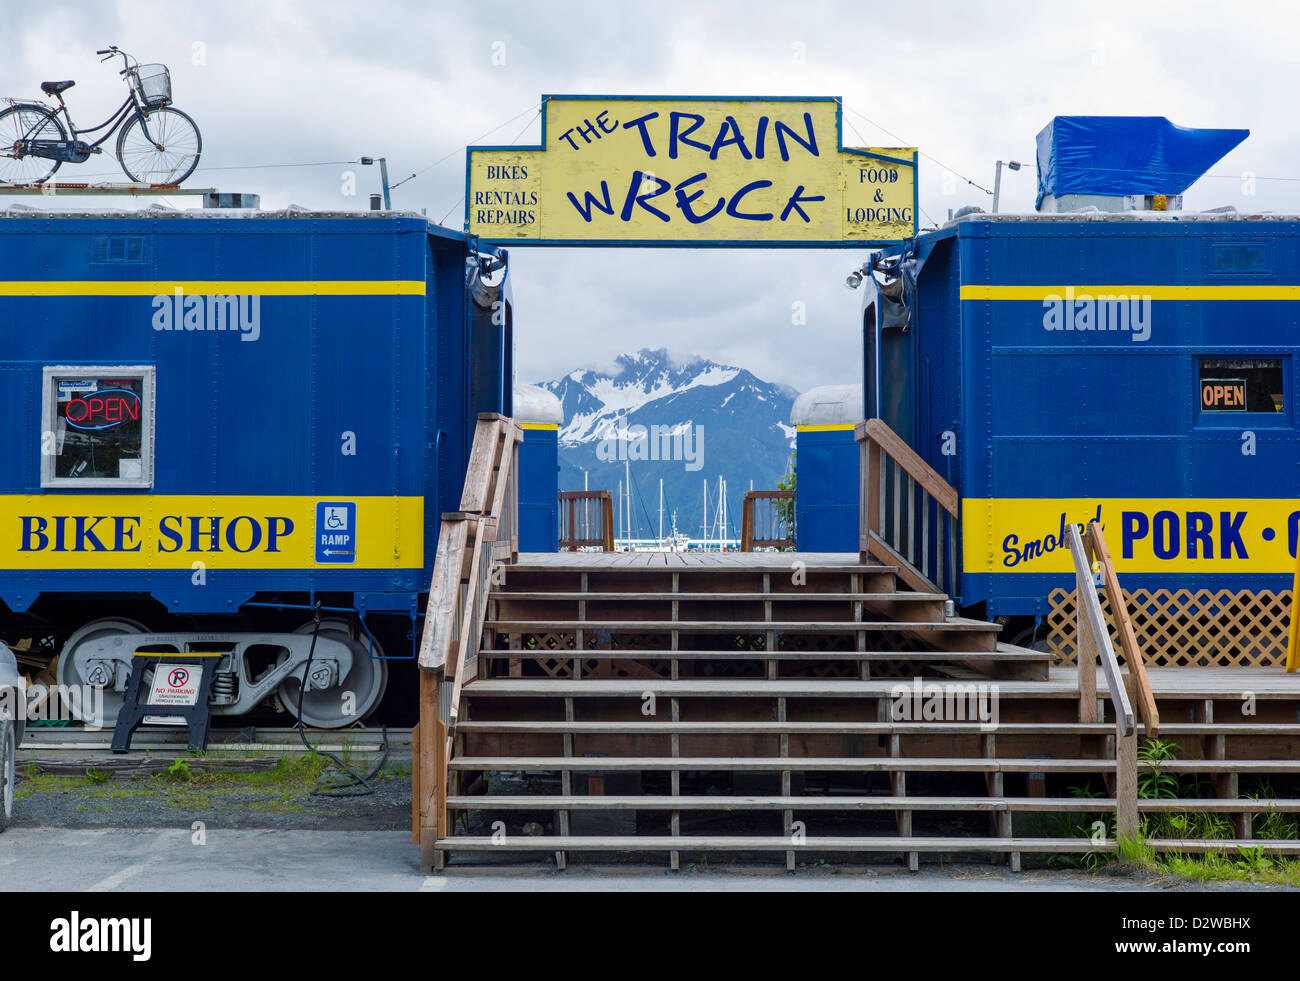 The Train Wreck, collection of refurbished railcars from Alaska